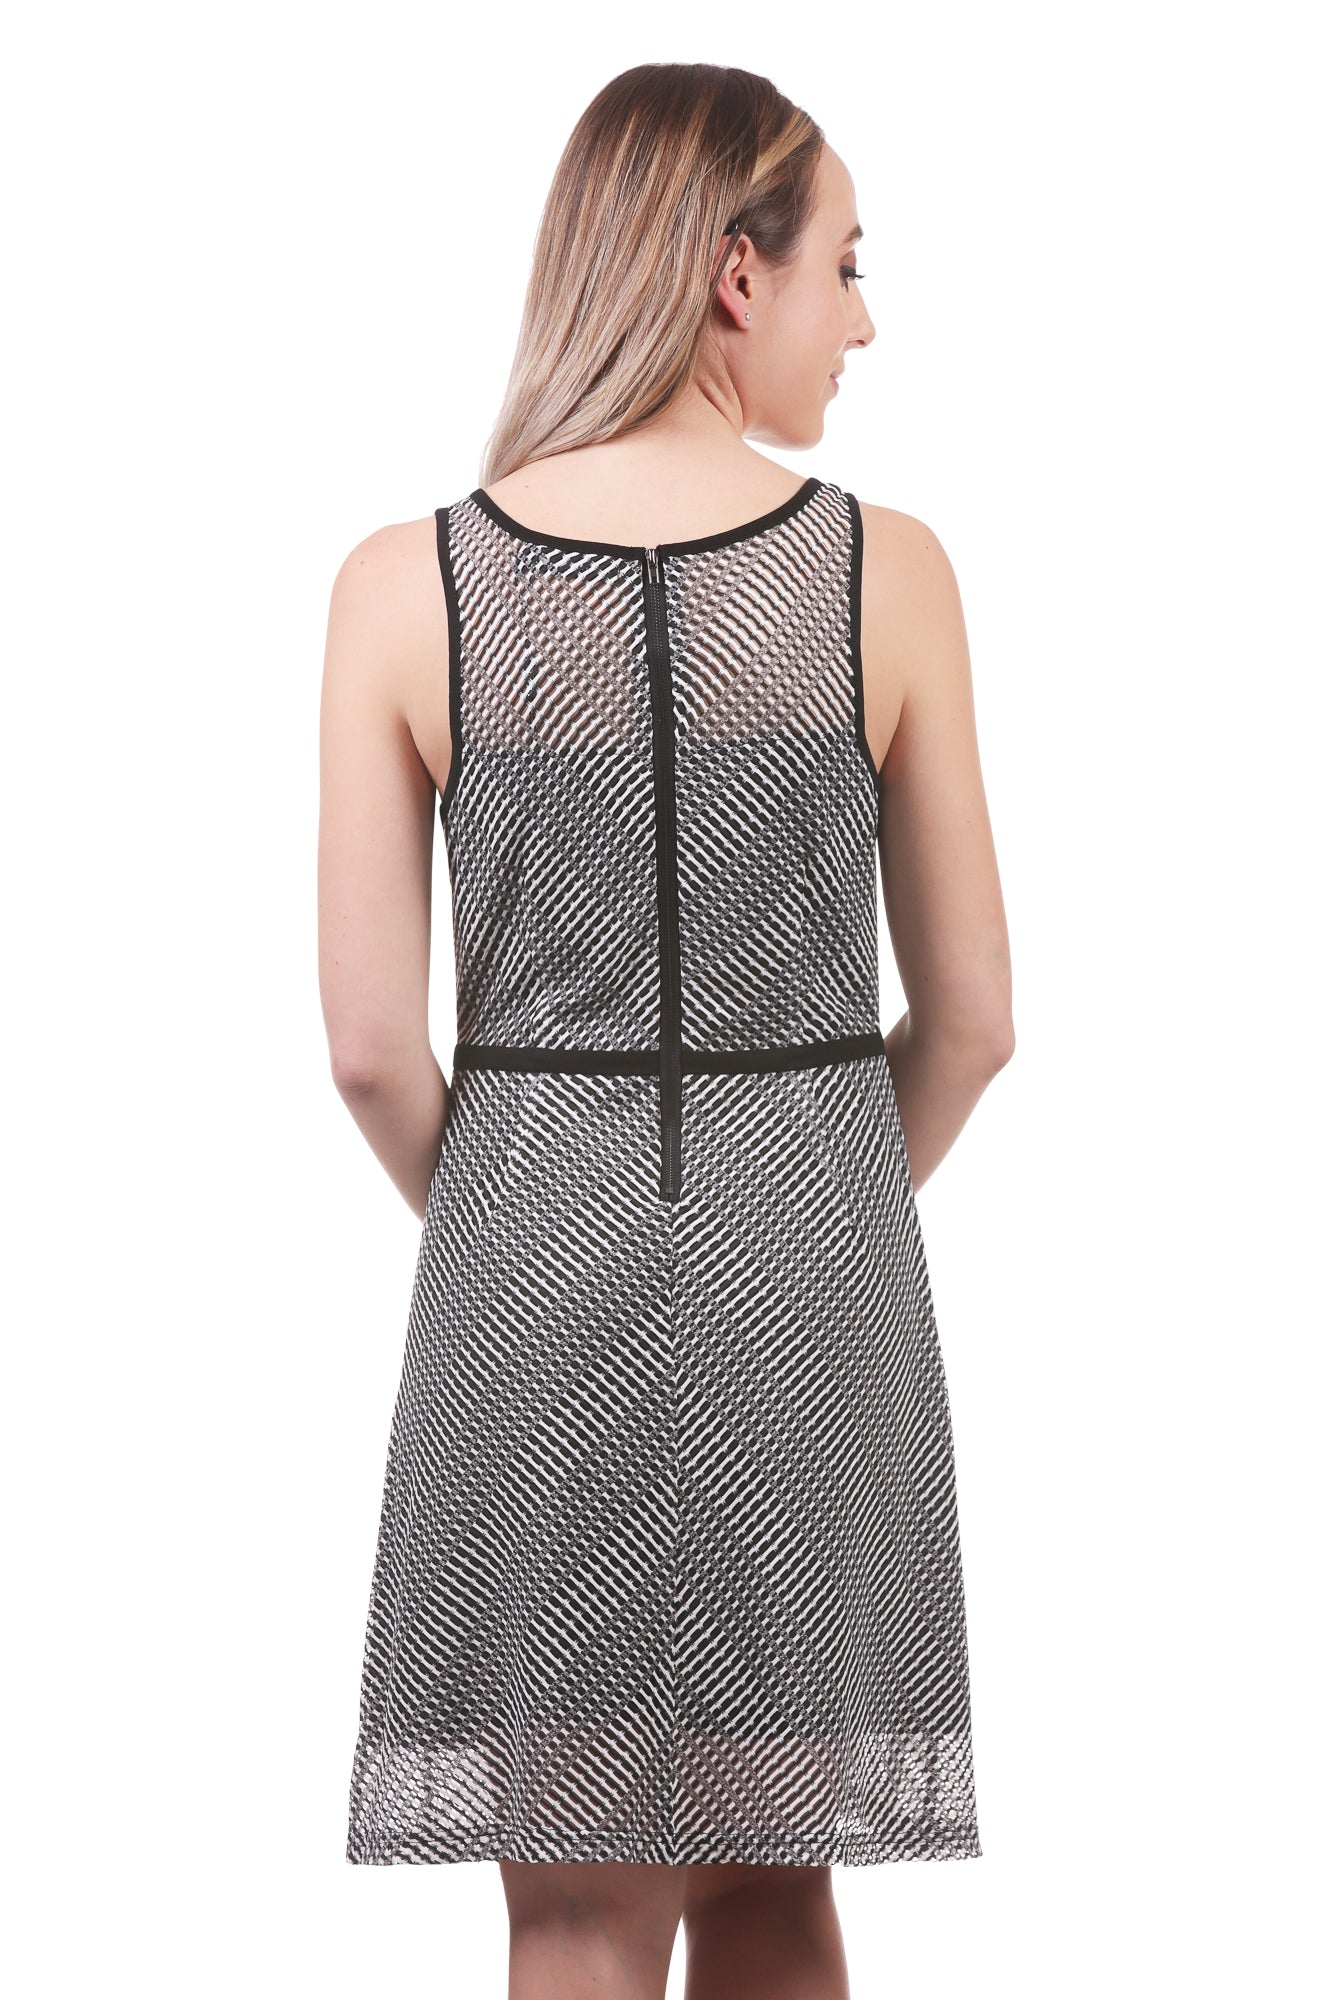 Womens Striped Mesh Fit and Flare Dress with Trim and Pockets | Neesha